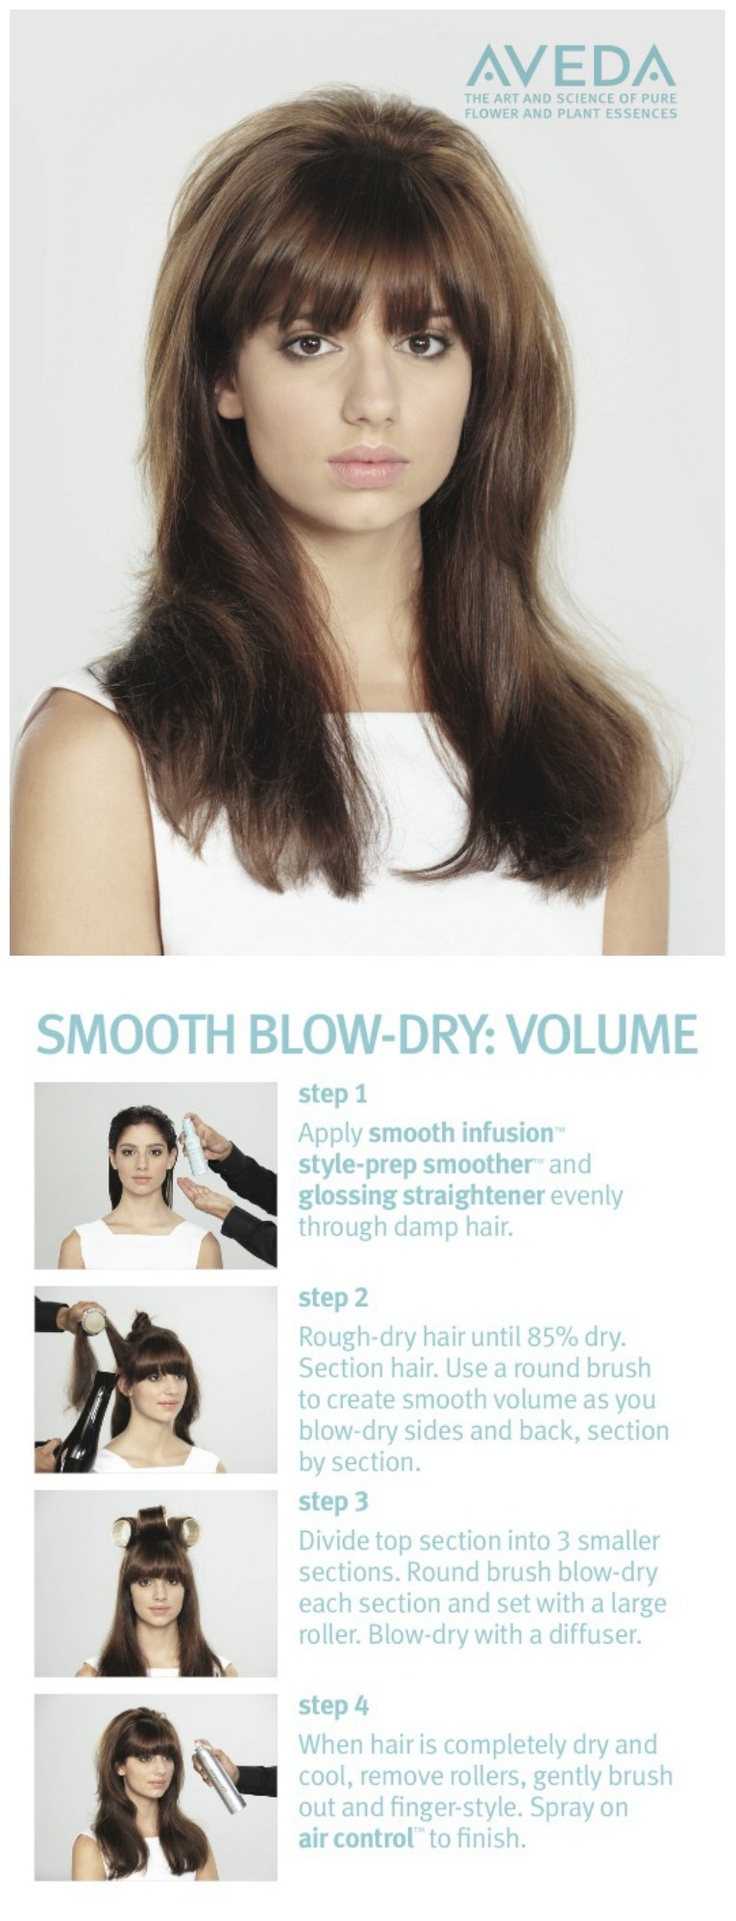 HowTo: Smooth and Volumize Hair with a Blow Dry - Aveda